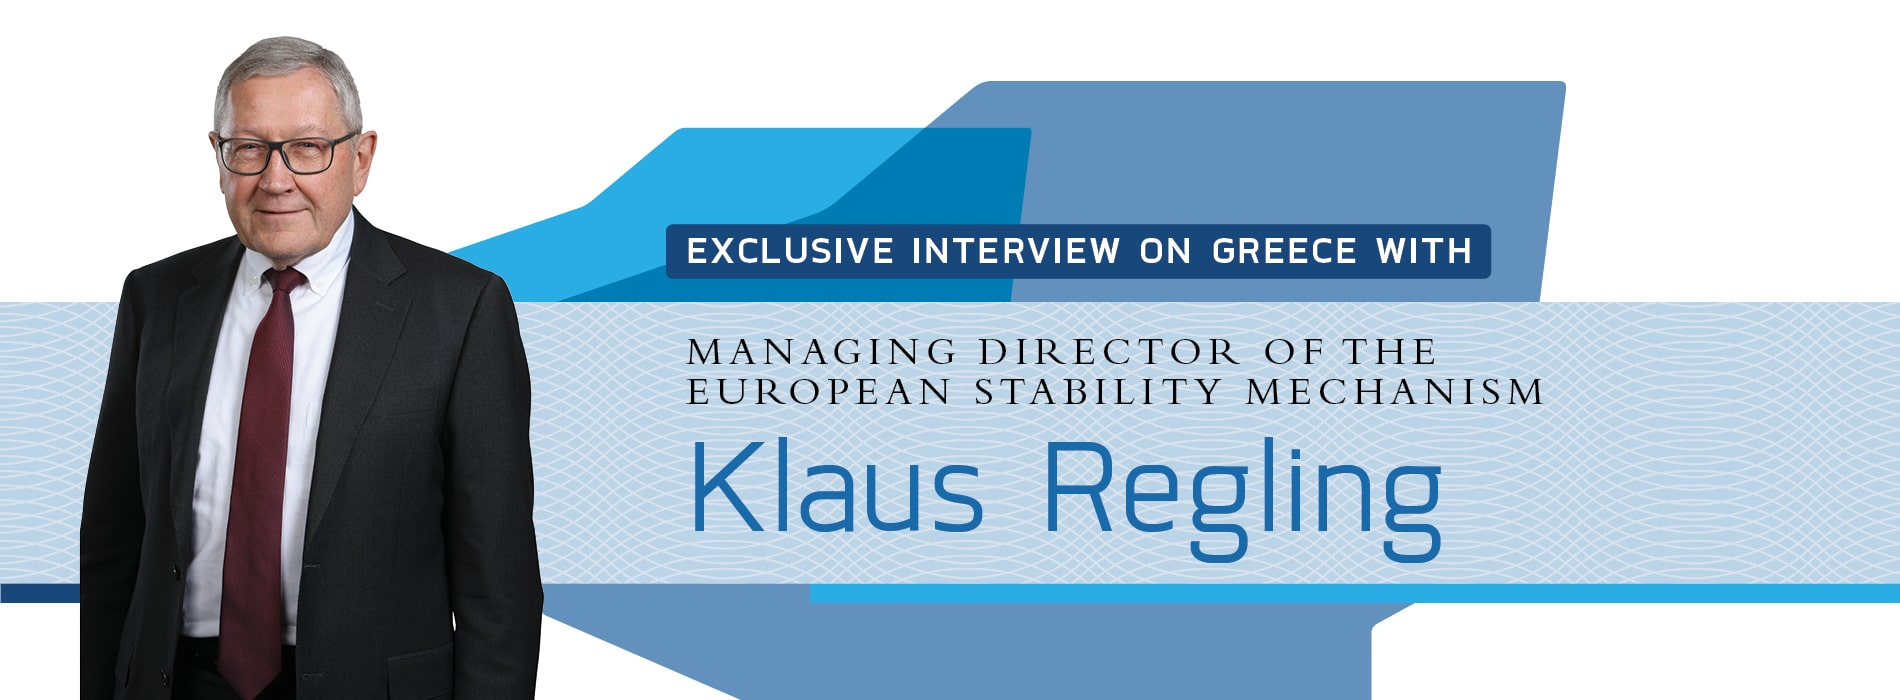 Interview with Klaus Regling of the European Stability Mechanism